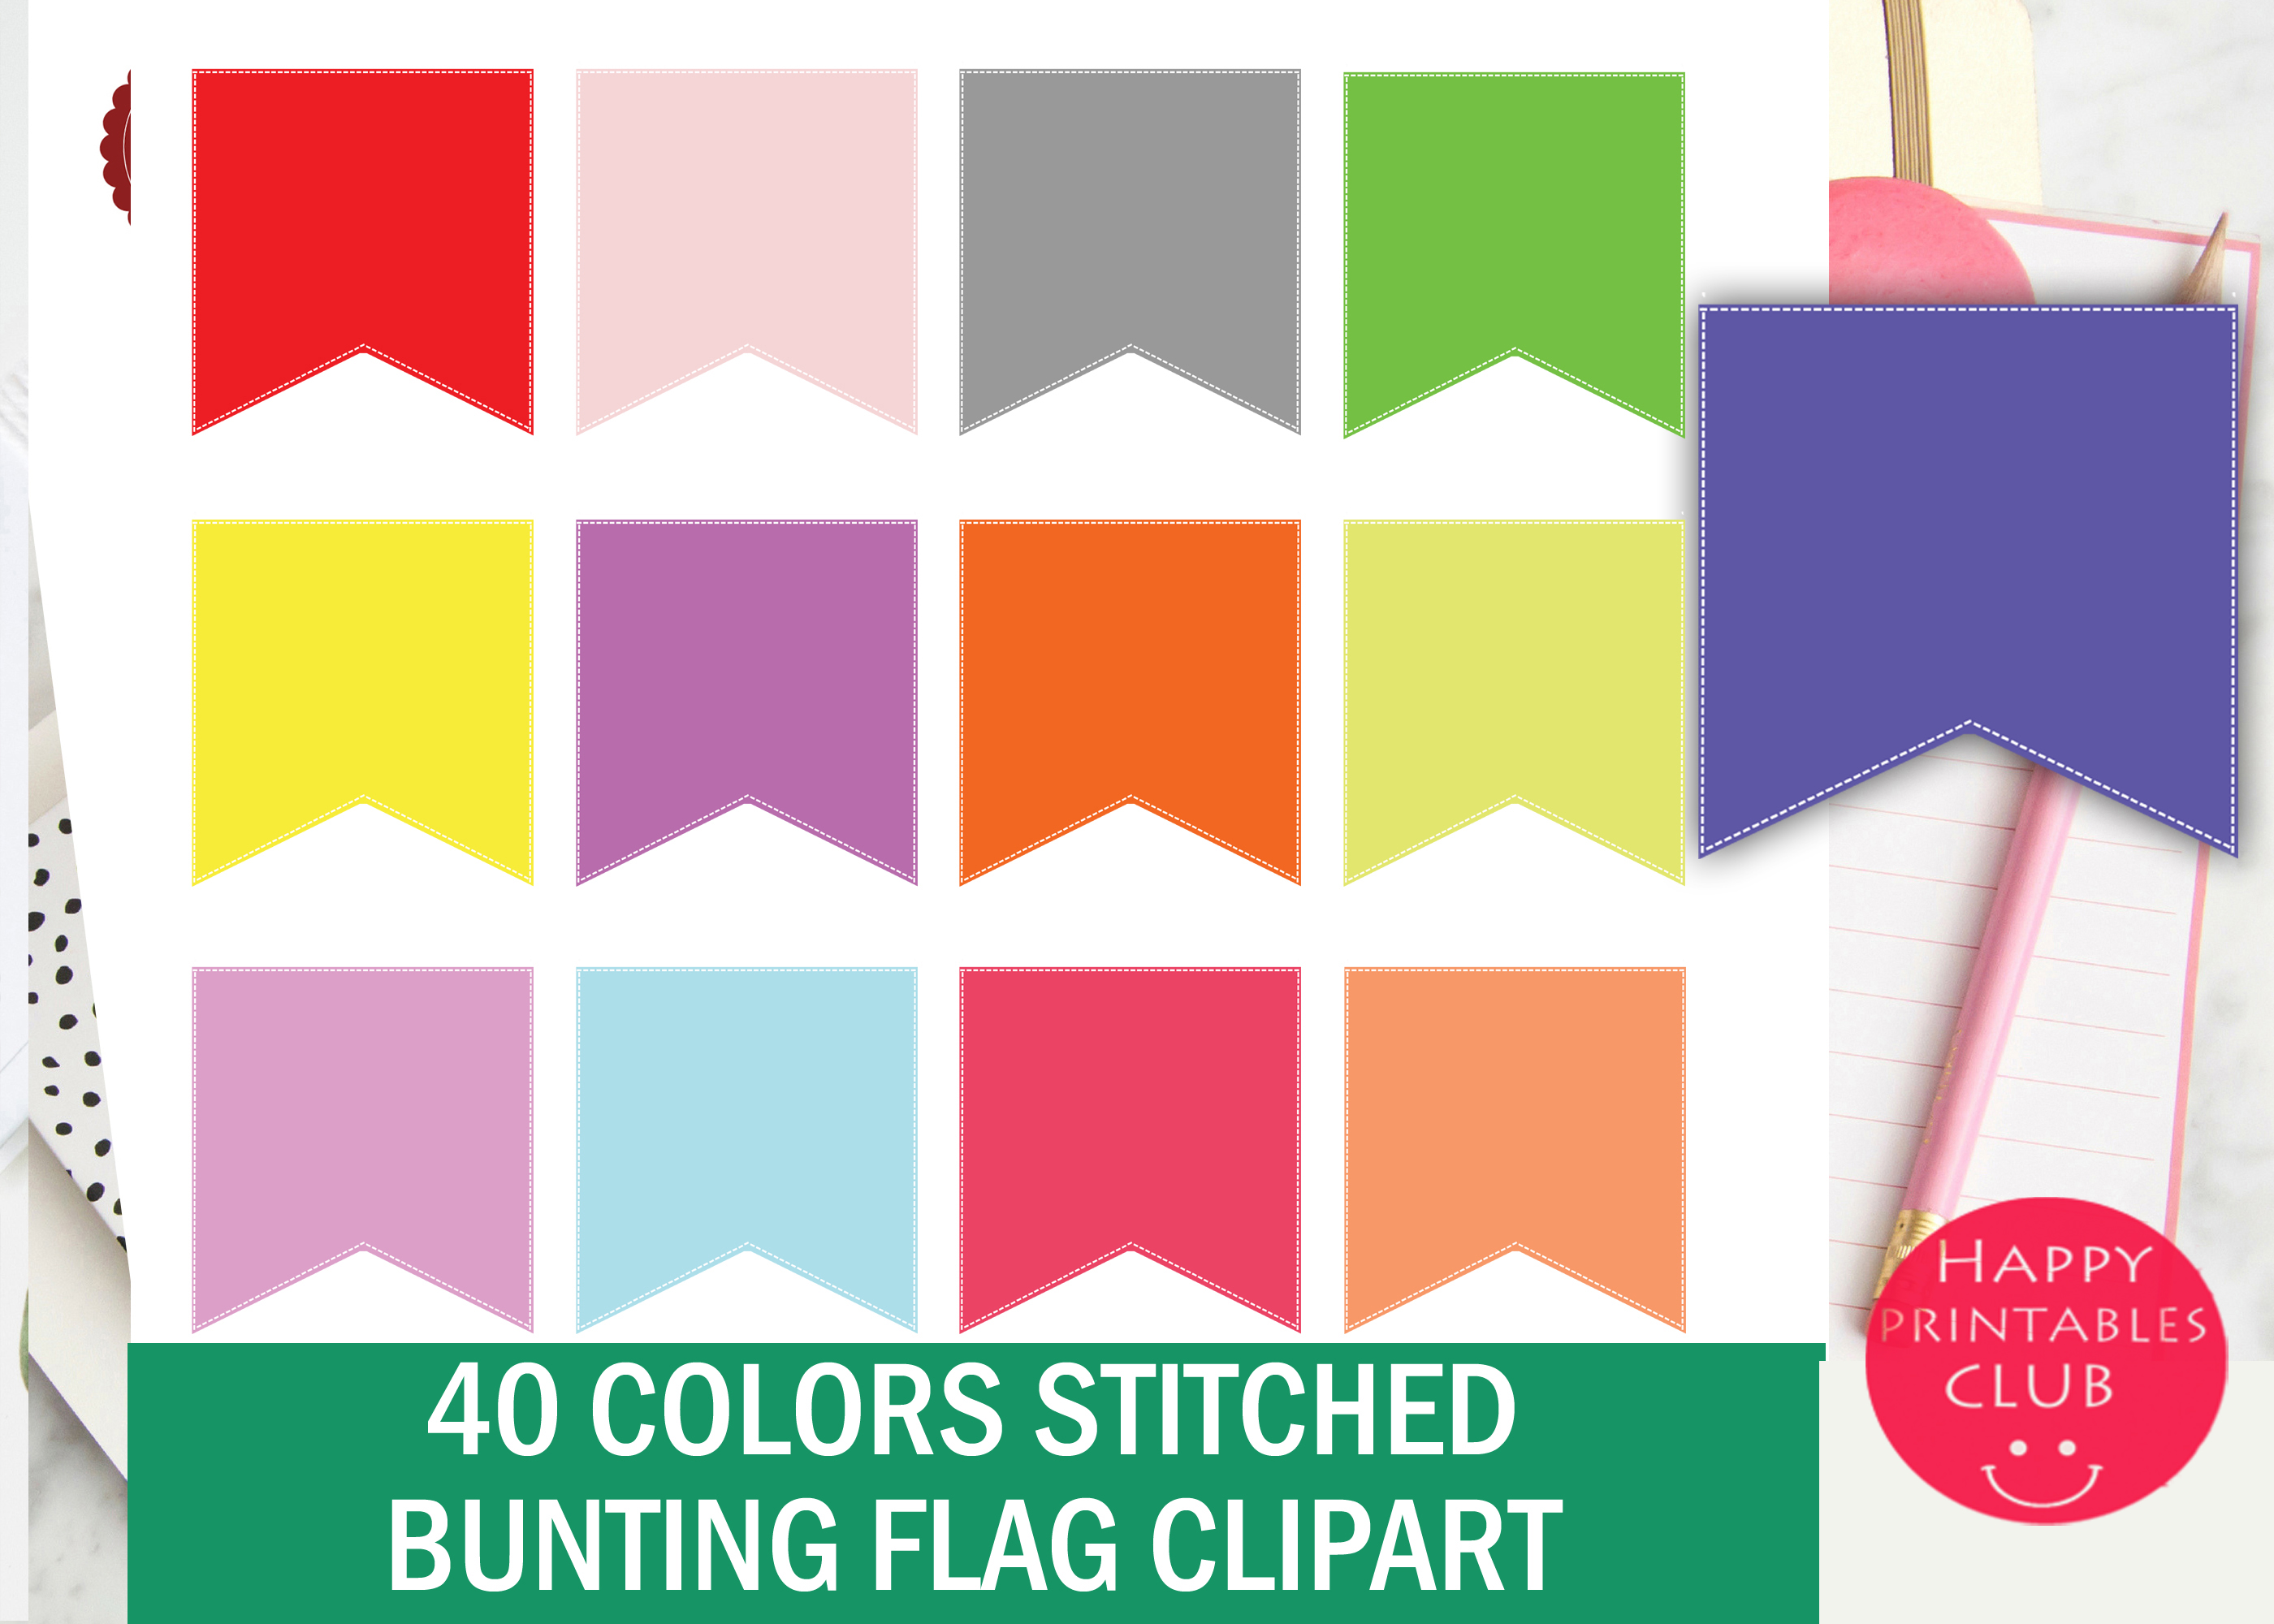 40 Colors Stitched Bunting Flag Clipart example image 2